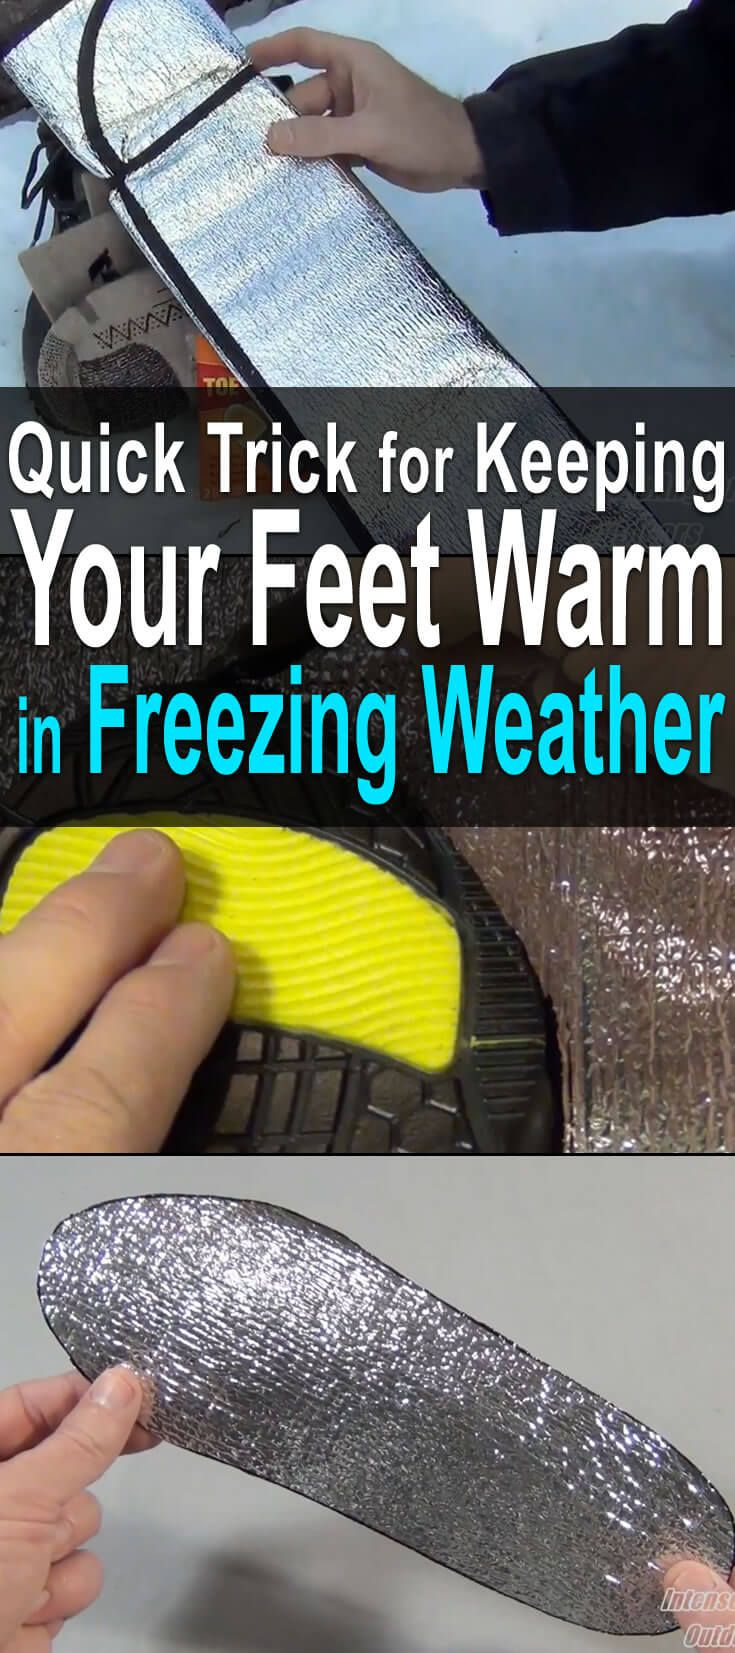 Quick Trick for Keeping Your Feet Warm in Freezing Weather